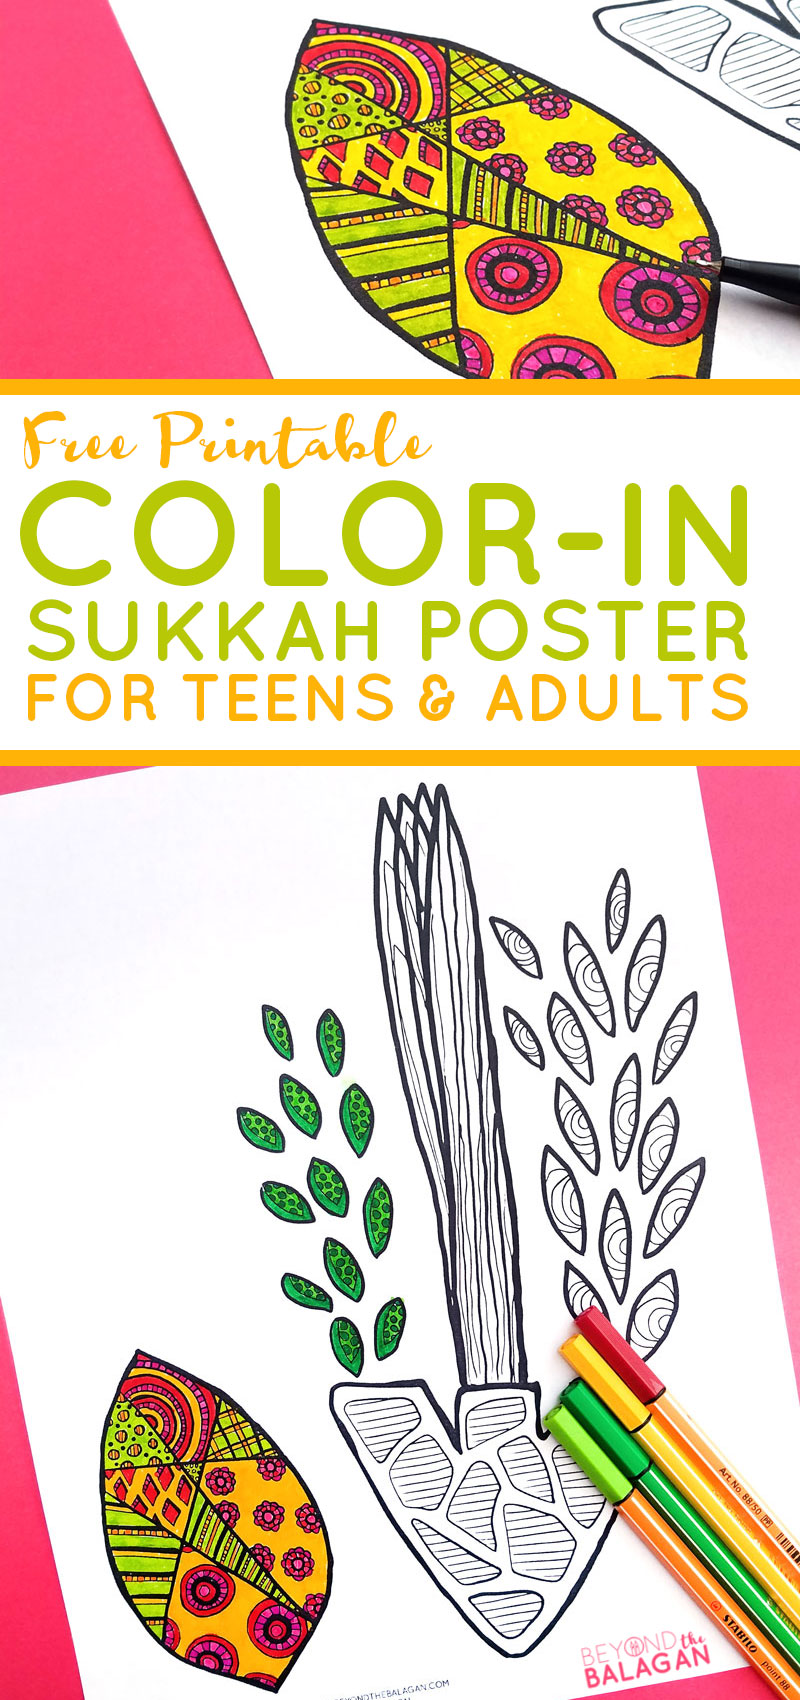 sukkah poster coloring page free printable beyond the balagan